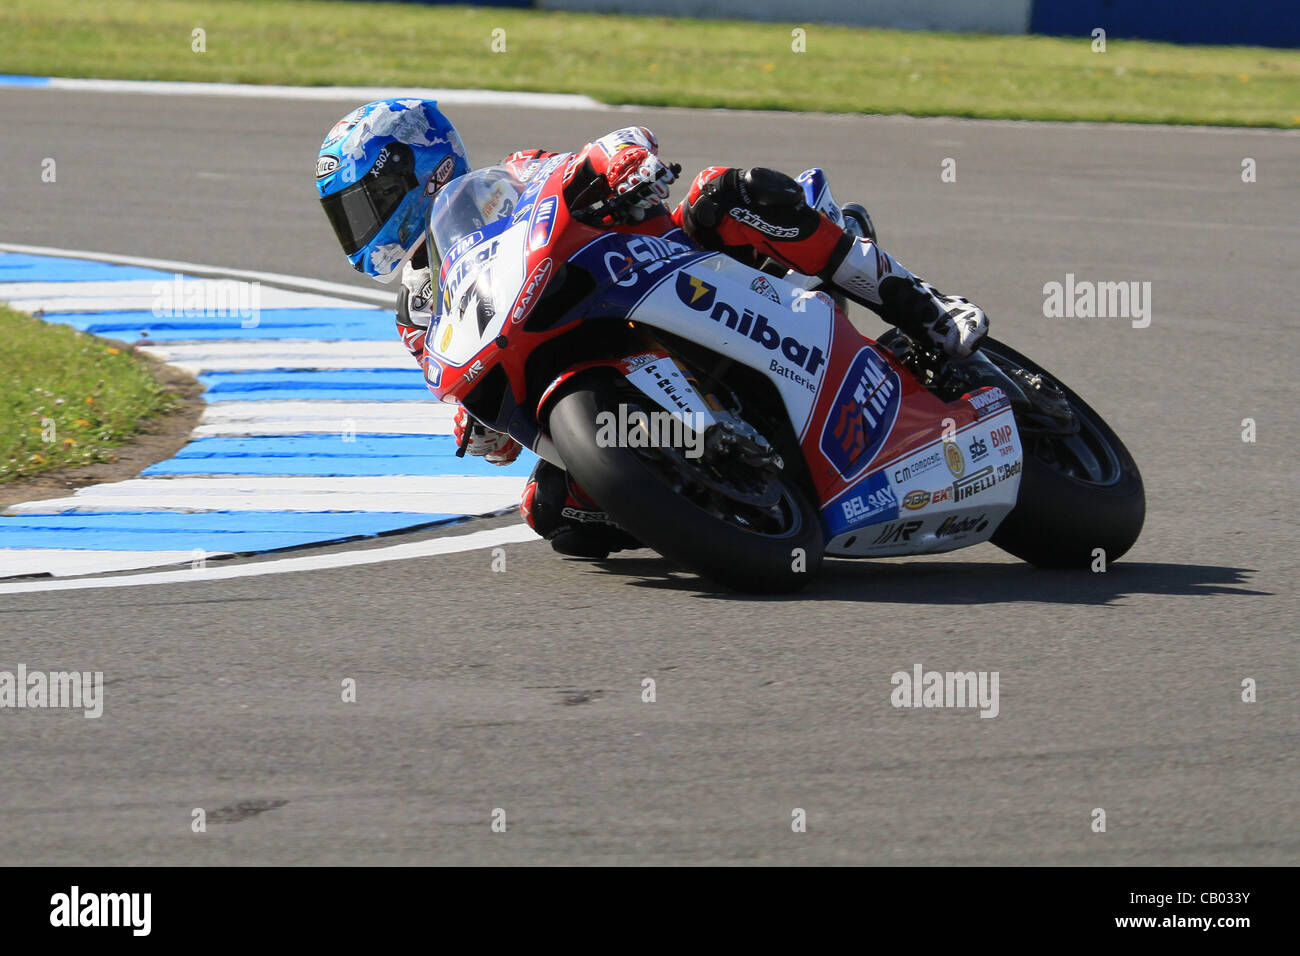 UK. 12.05.2012. Donington Park, England.  Carlos Chesca rides at Ductati 1098R for Althea Racing in the  World Superbike Stock Photo